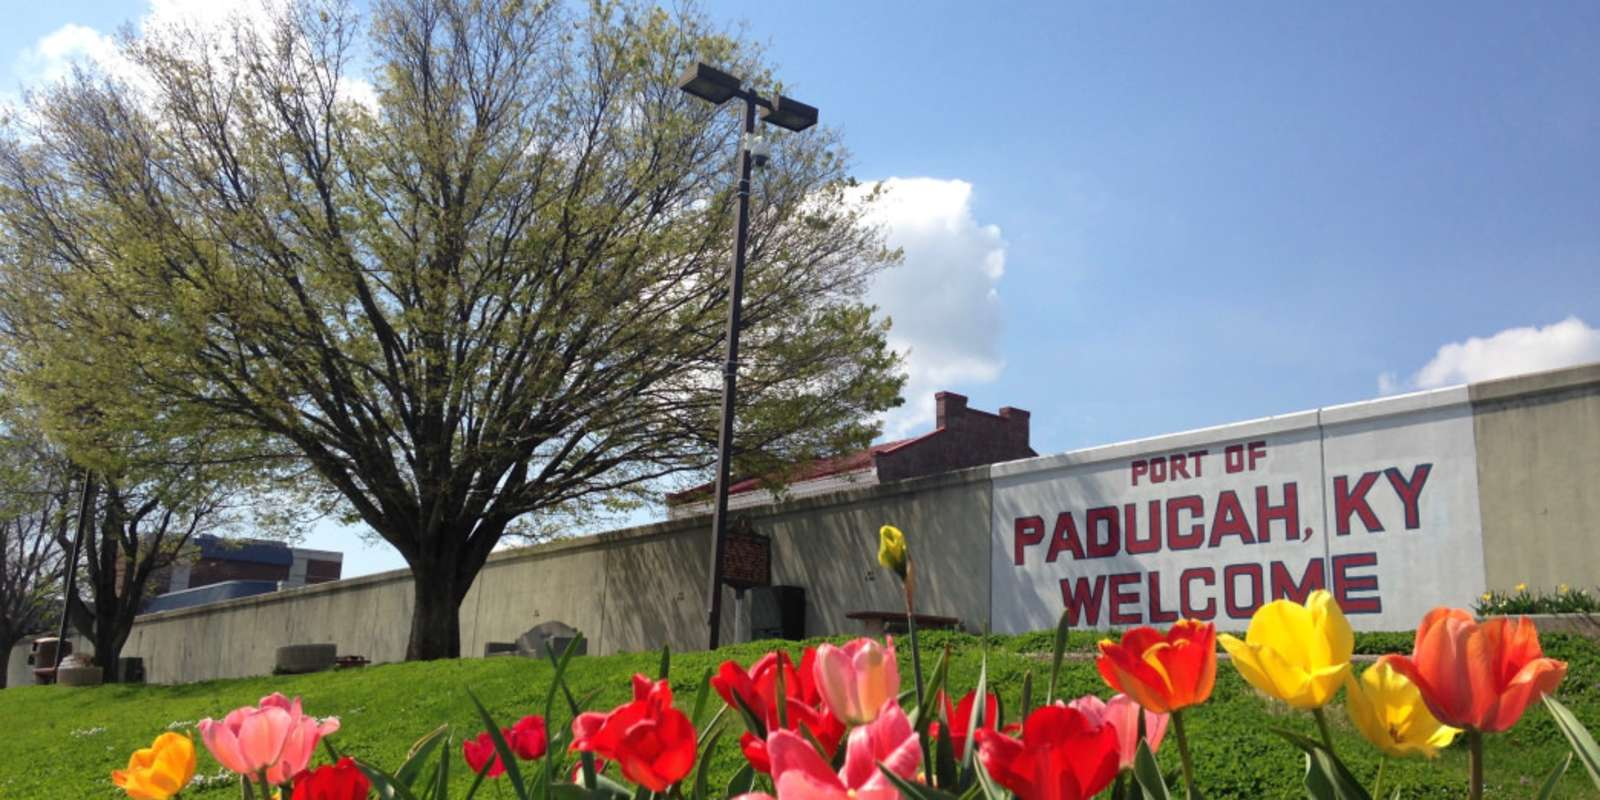 Port of Paducah Welcome